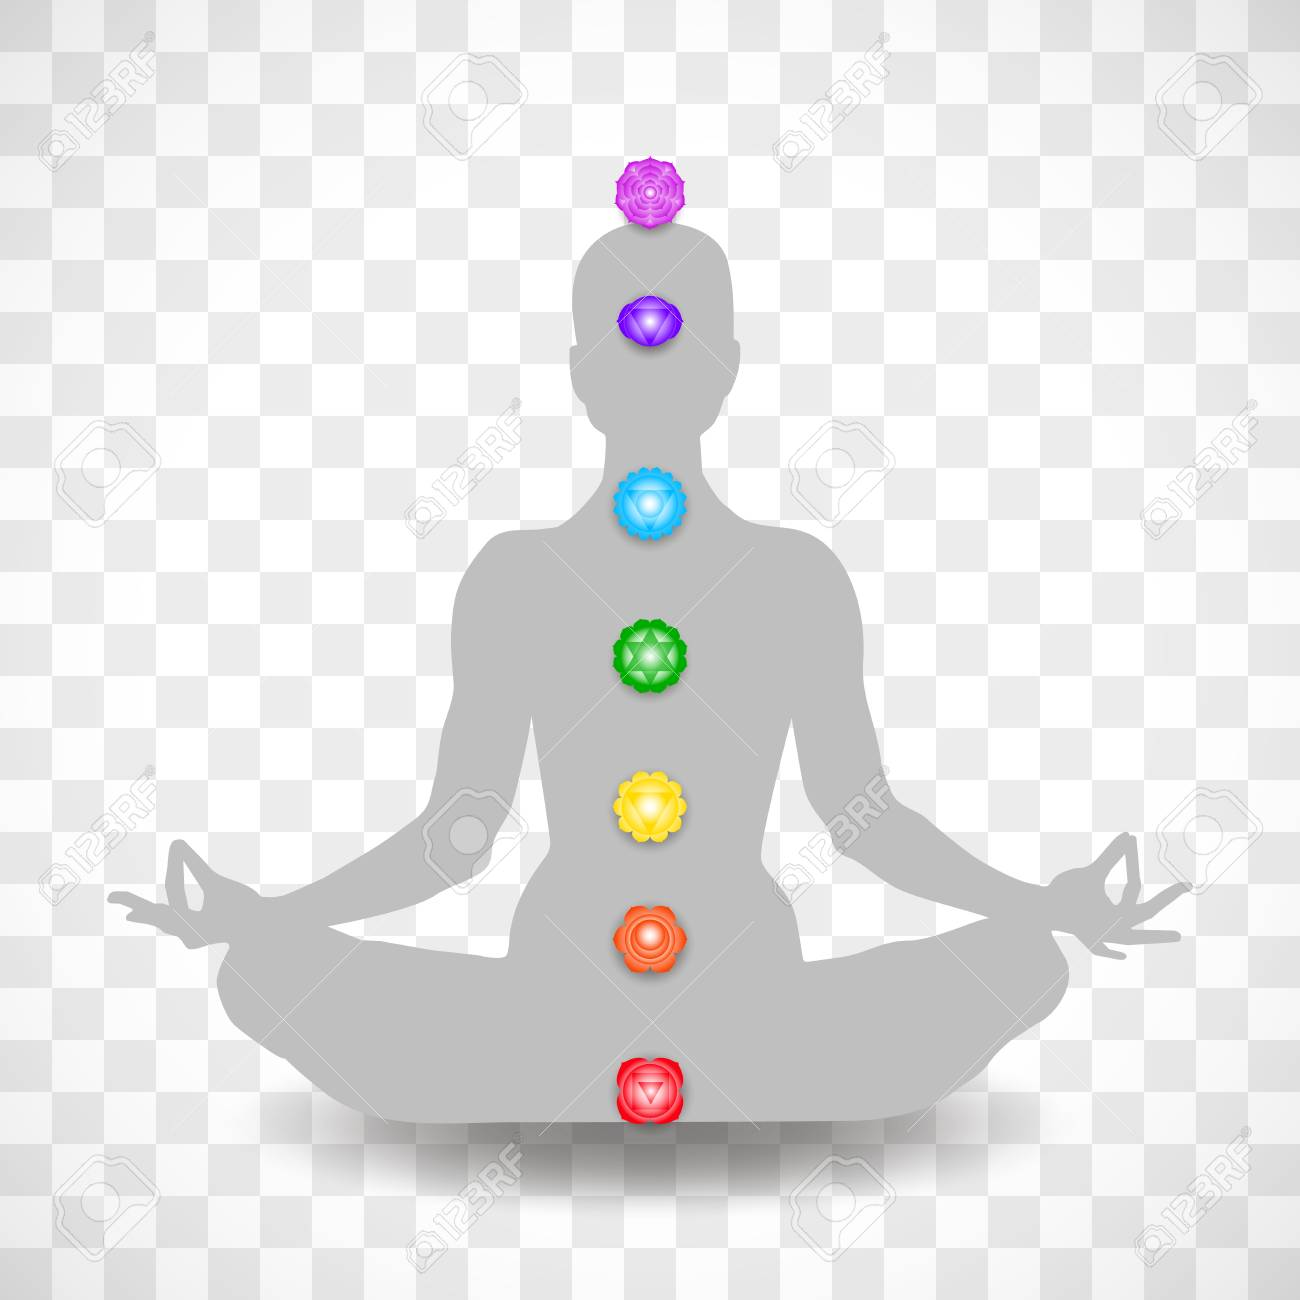 human body in yoga lotus asana and seven chakras symbols isolated royalty free cliparts vectors and stock illustration image 119809698 human body in yoga lotus asana and seven chakras symbols isolated